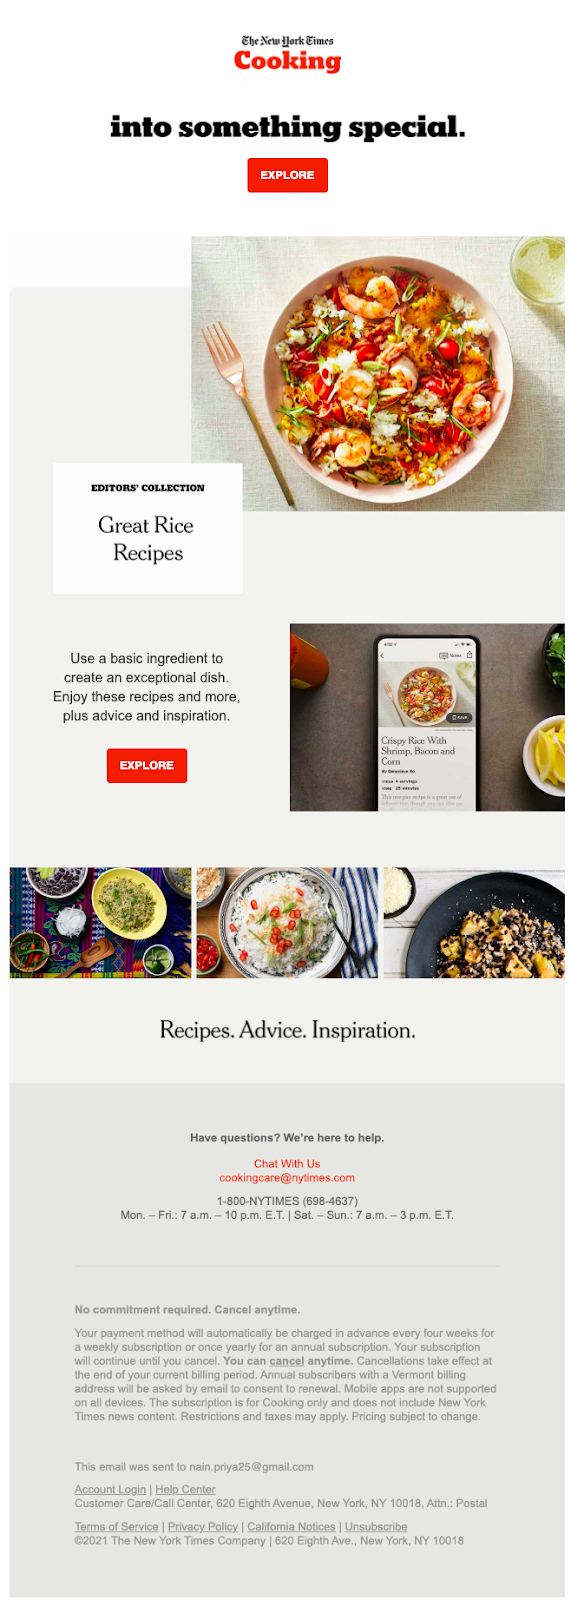 Email newsletter design of New York Times